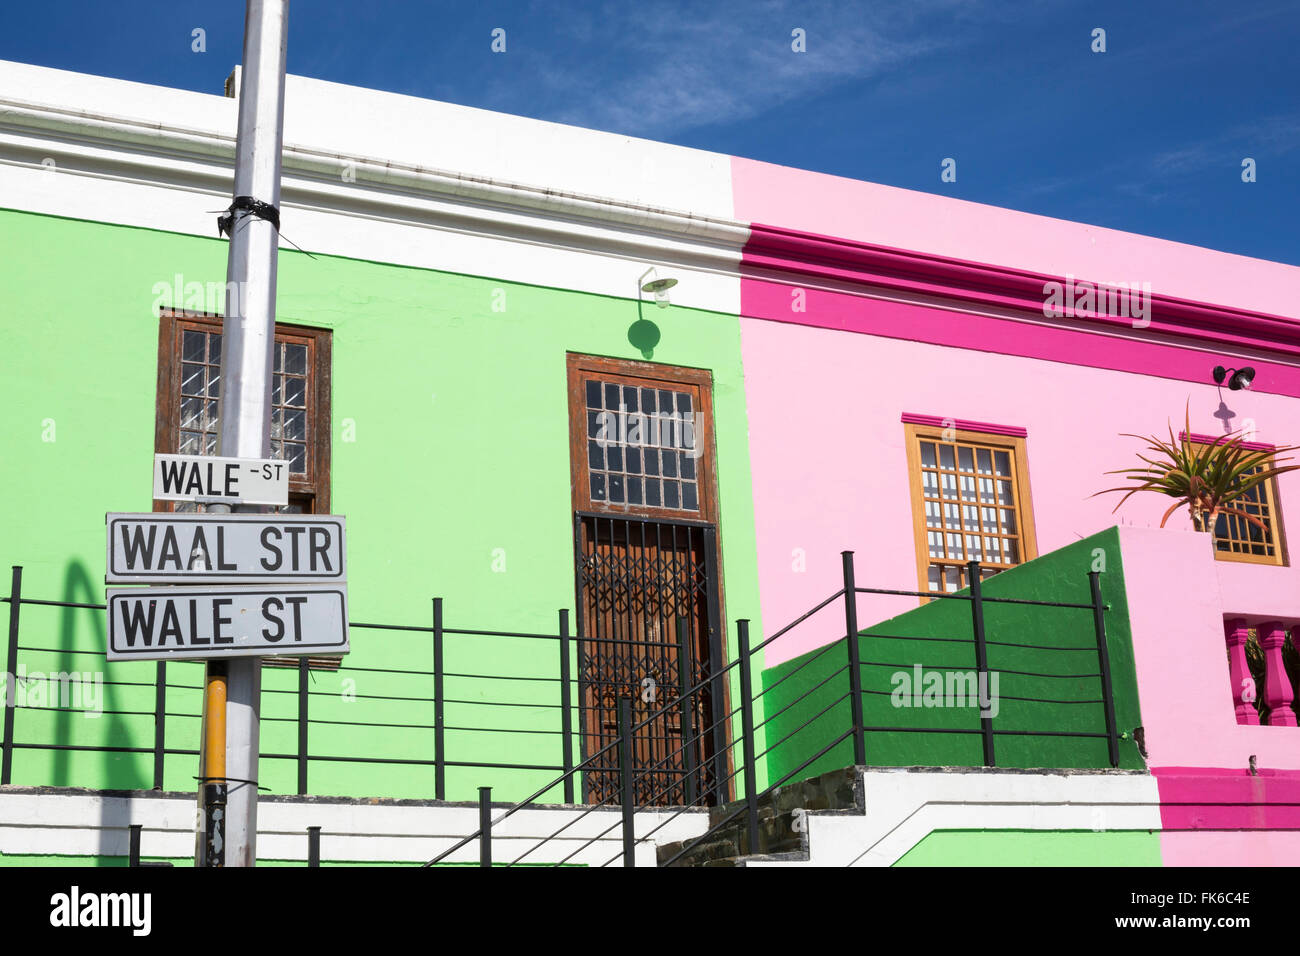 Colourful cottages, Bo Kaap Cape Malay district, Cape Town, South Africa, Africa - Stock Image